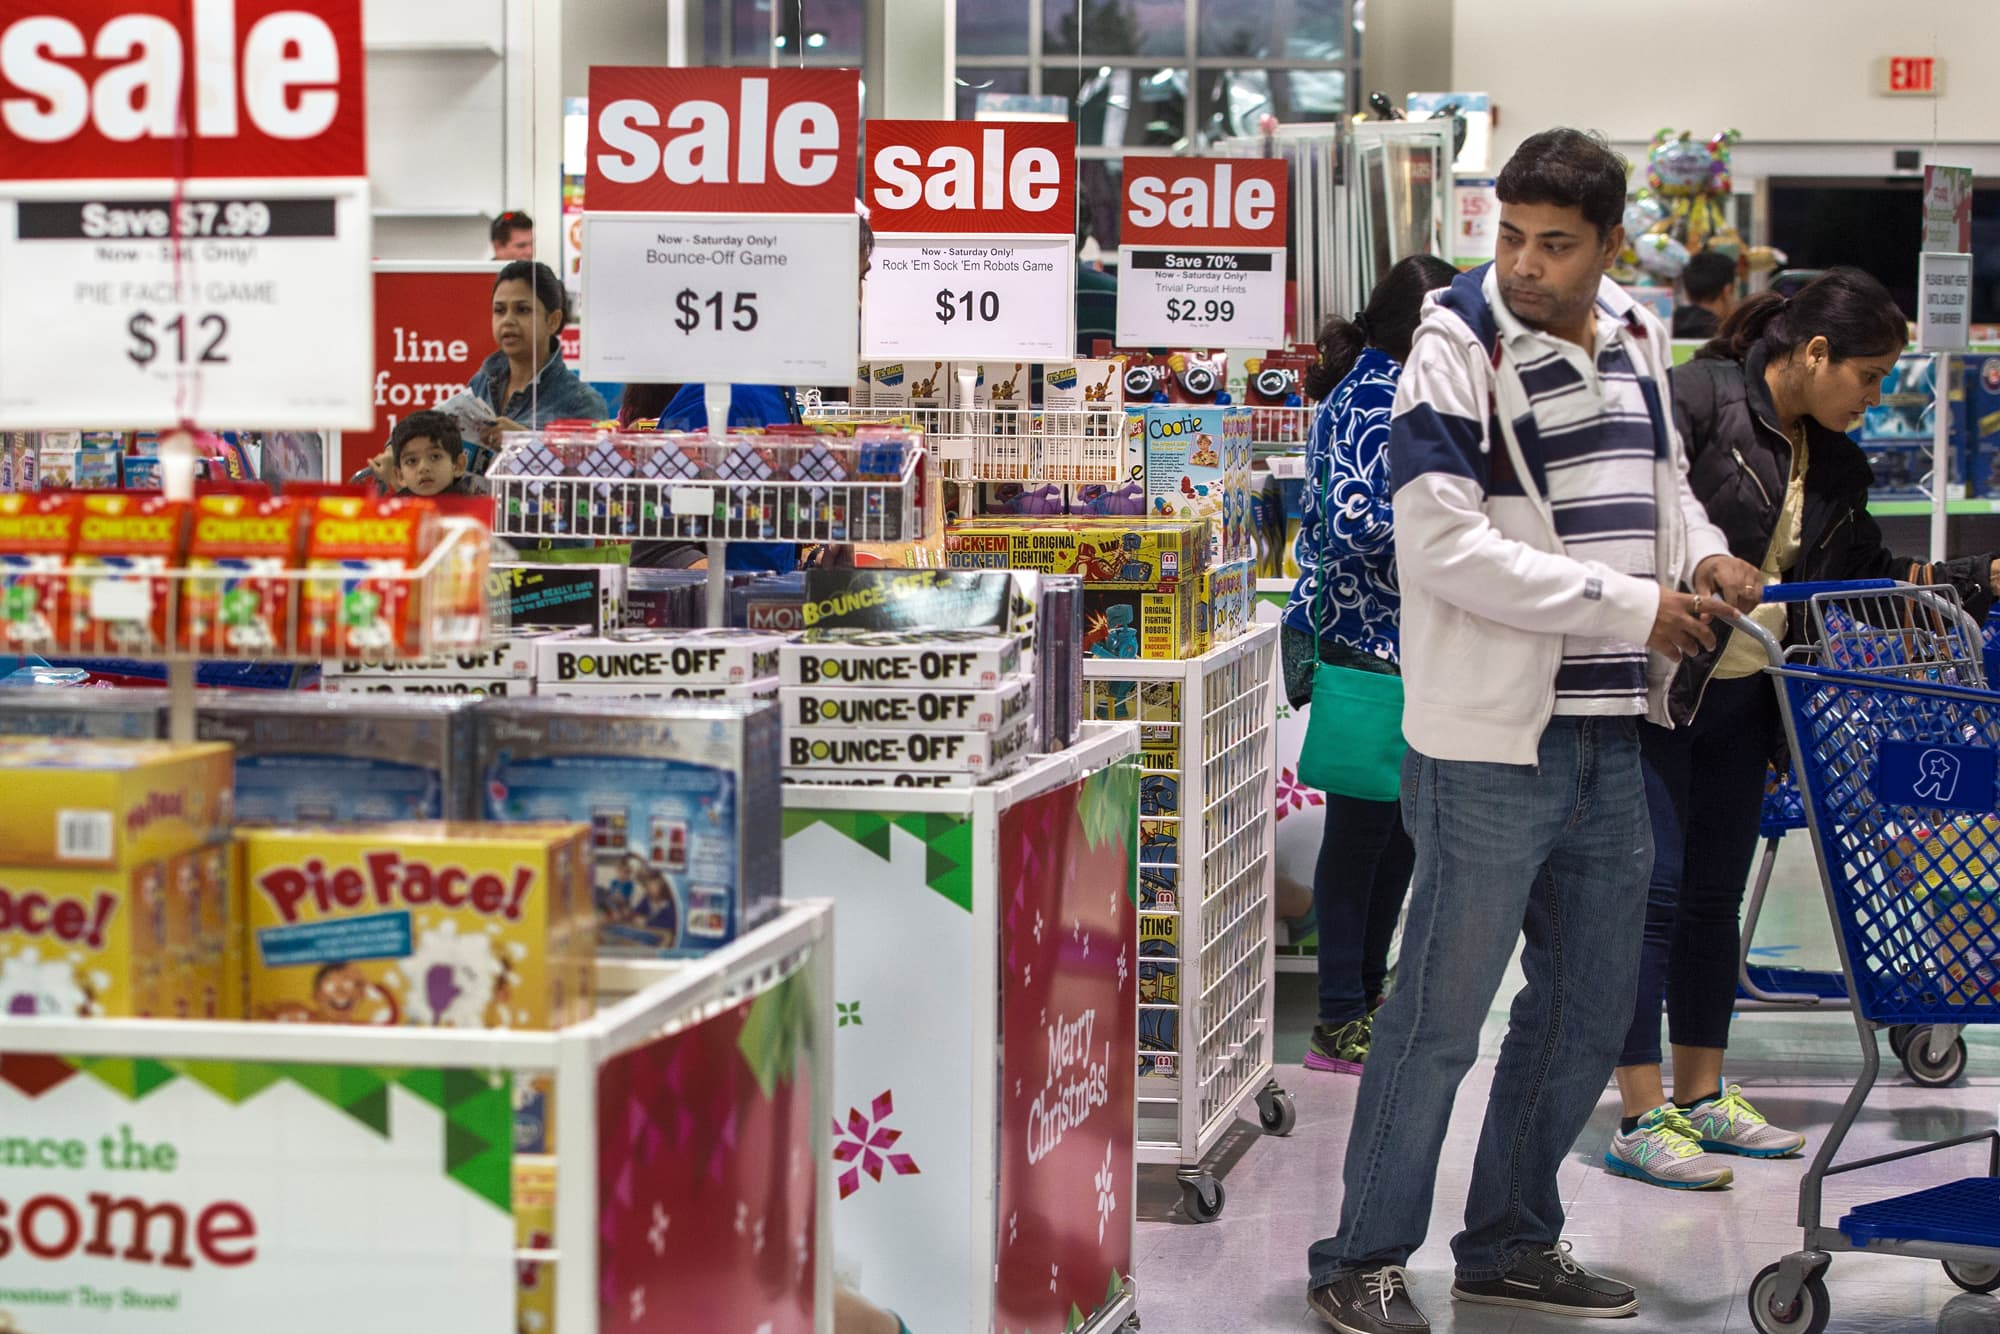 Toys r us files for chapter 11 bankruptcy protection buycottarizona Images